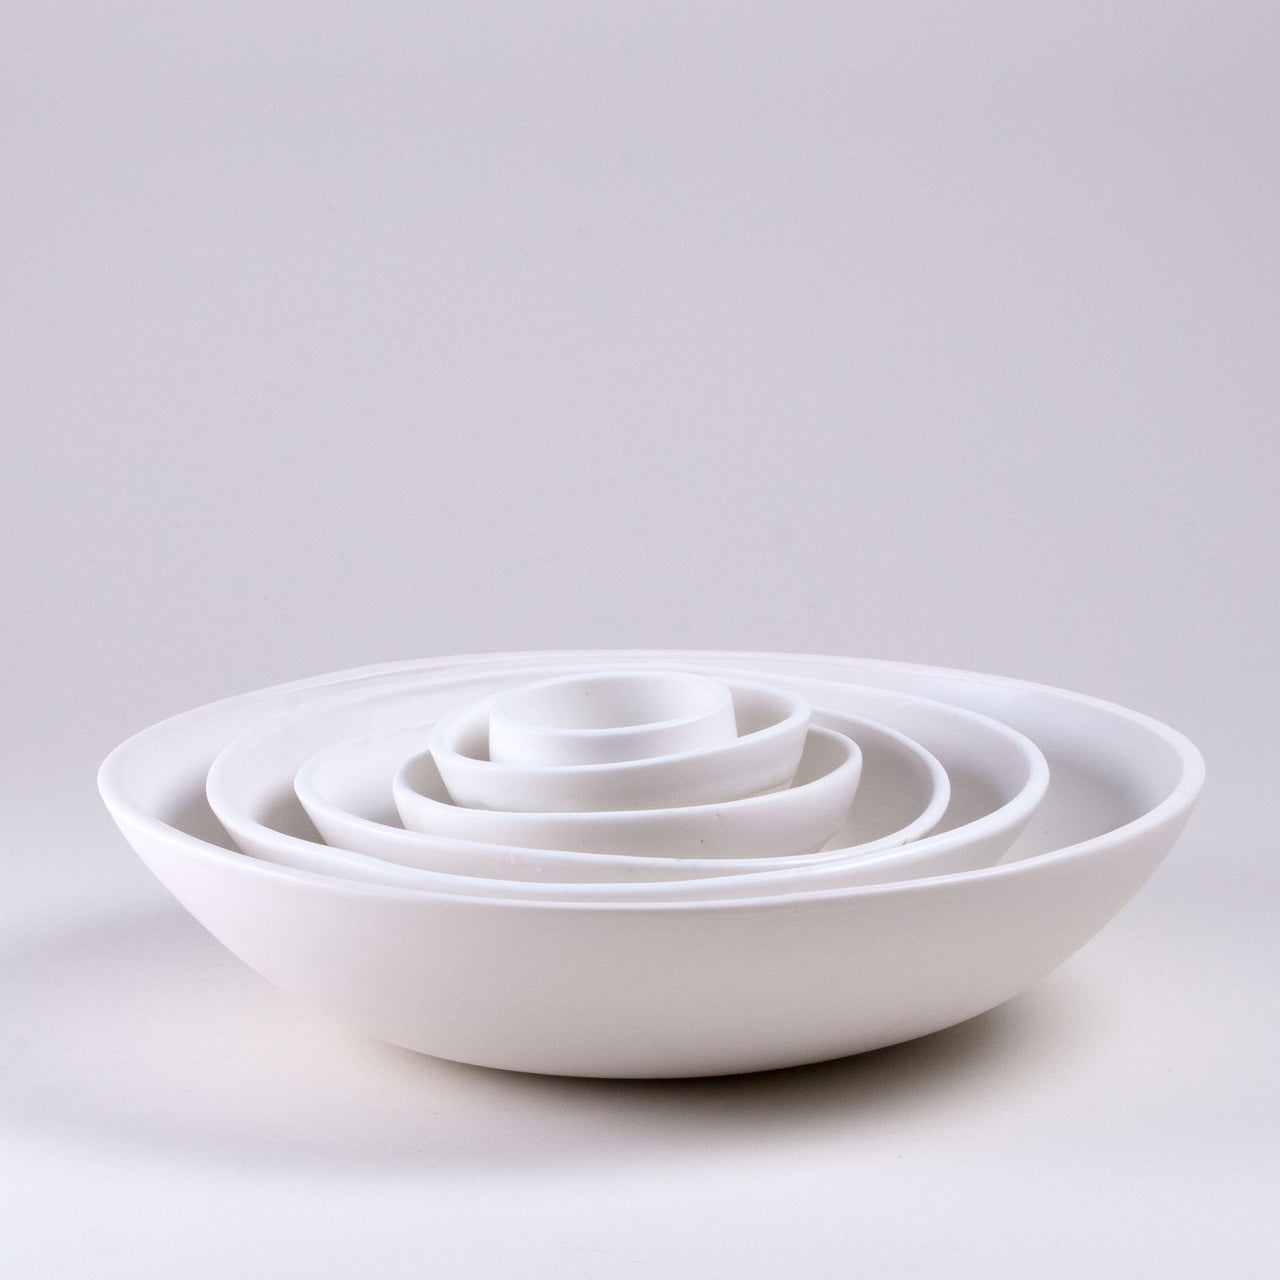 Modernist Bowls Side Shot